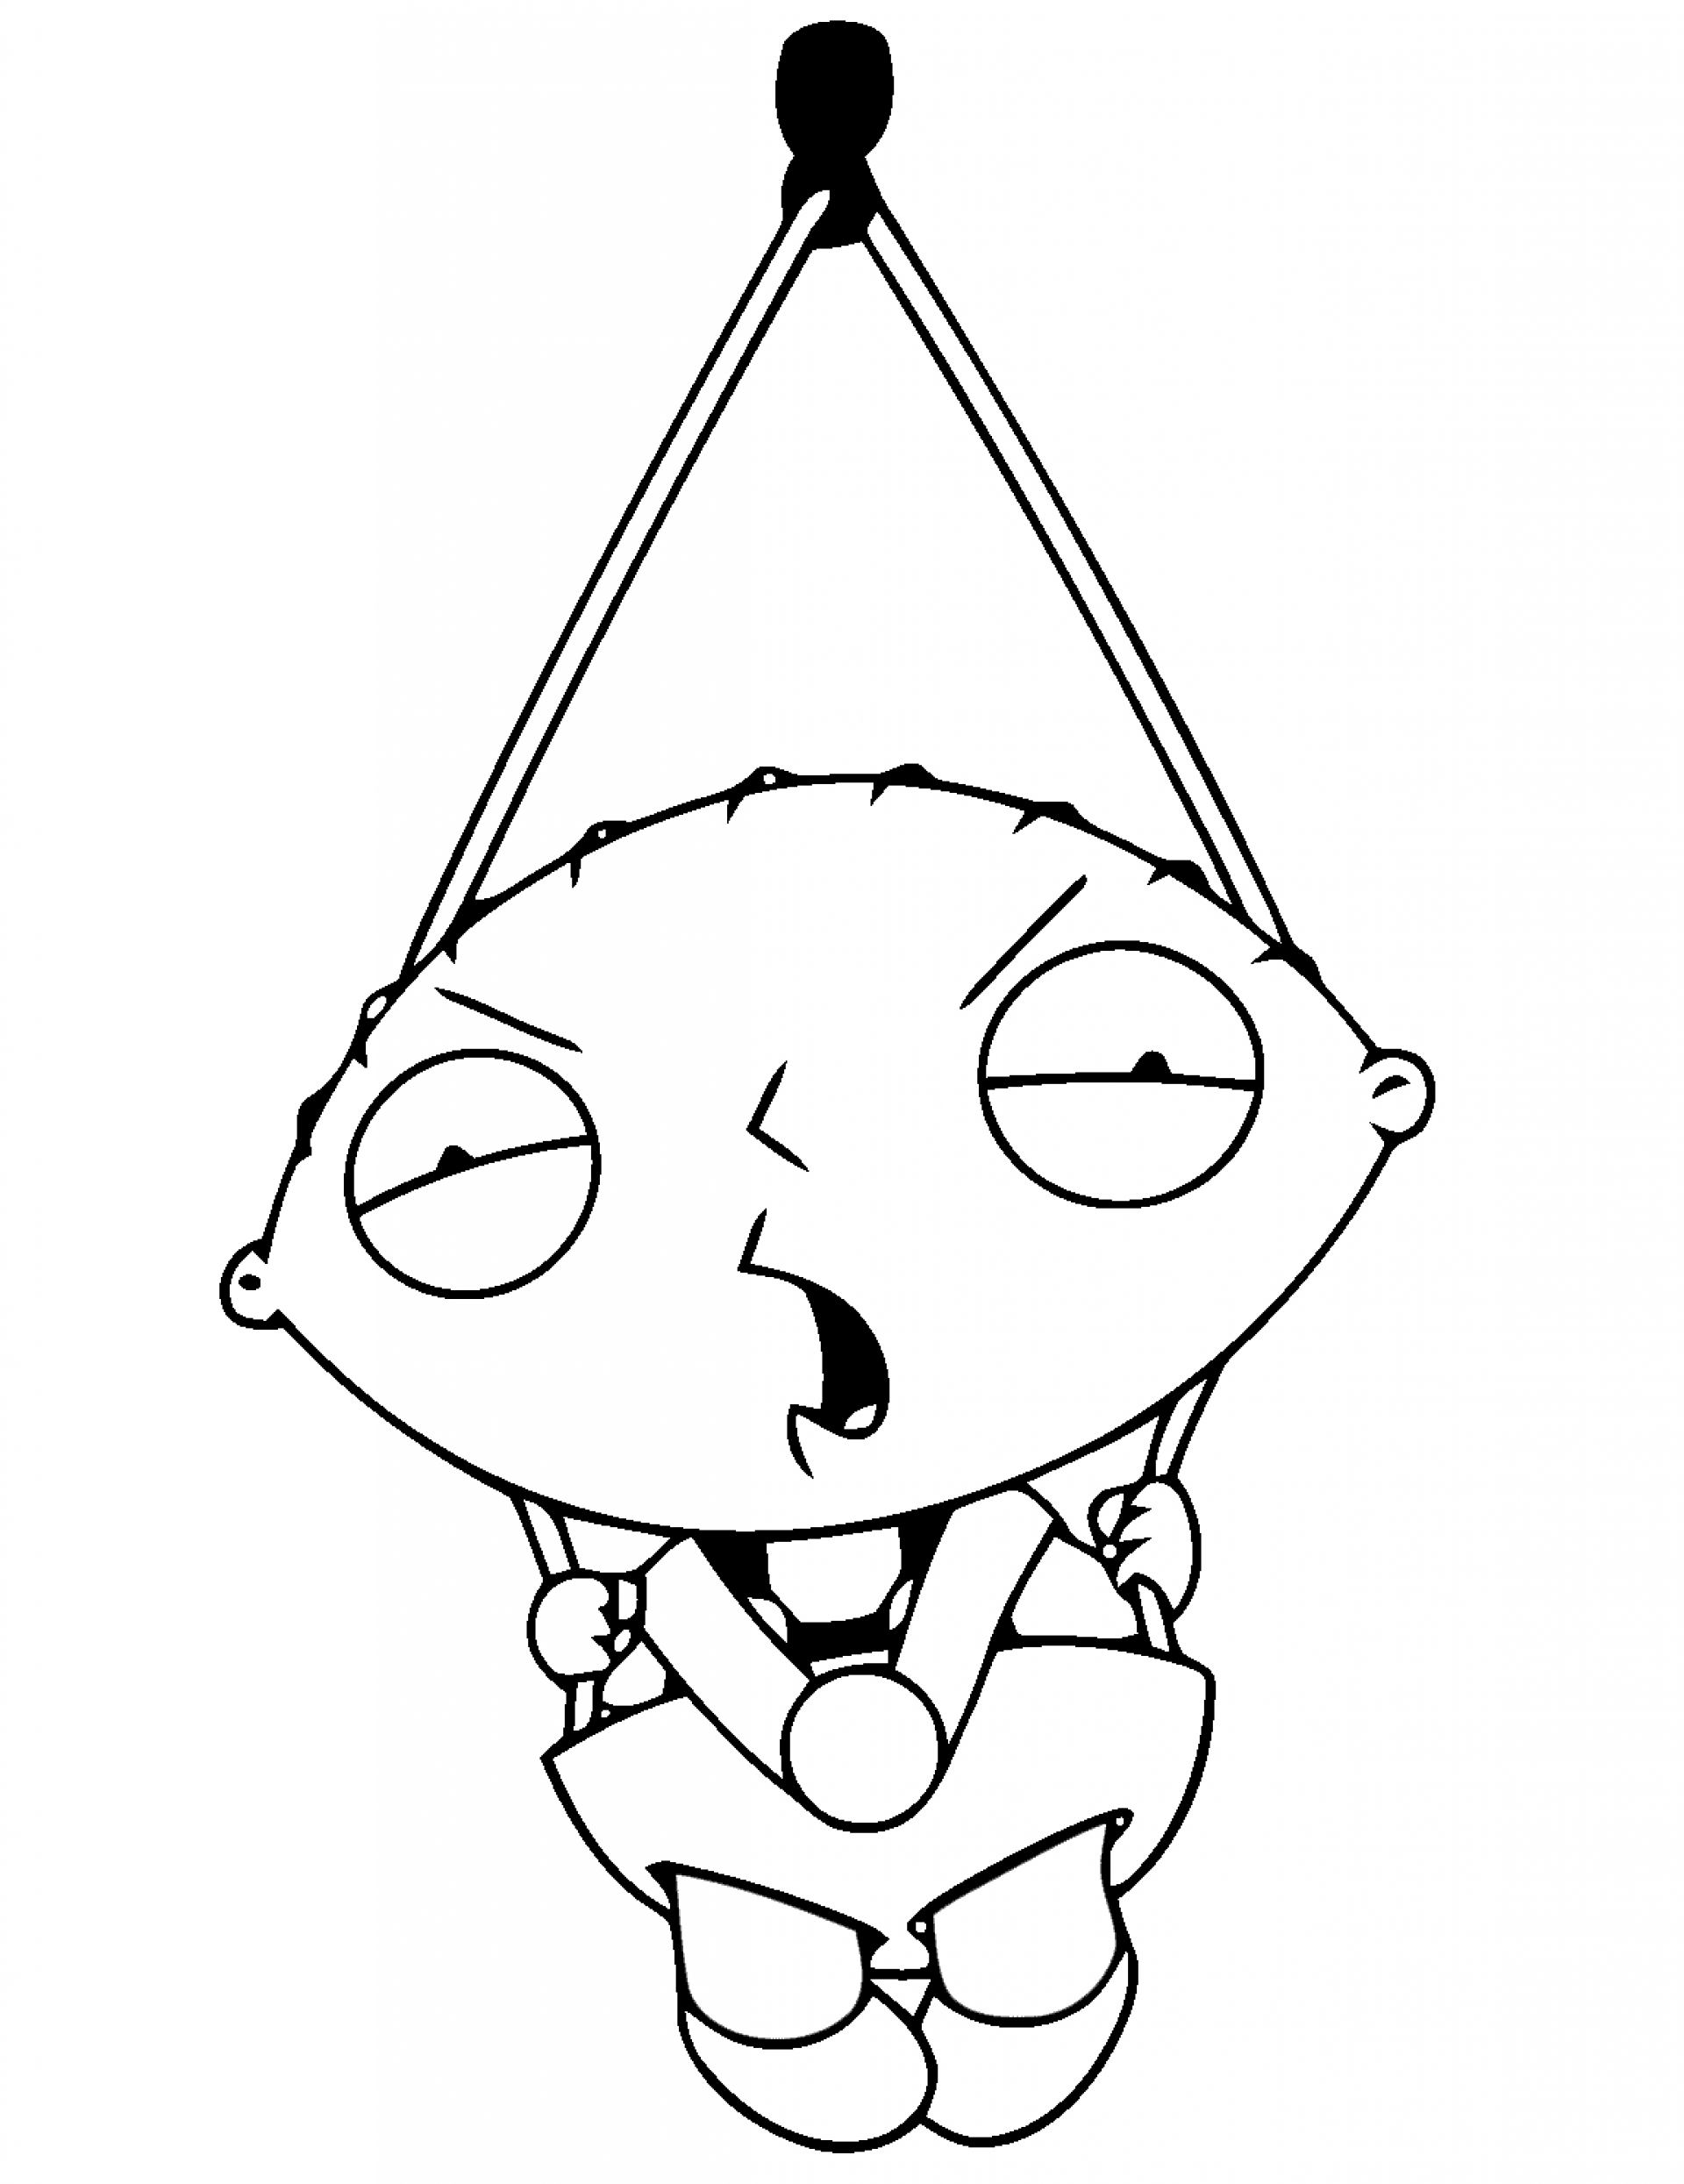 Cartoon Work Coloring Pages Download And Print For Free